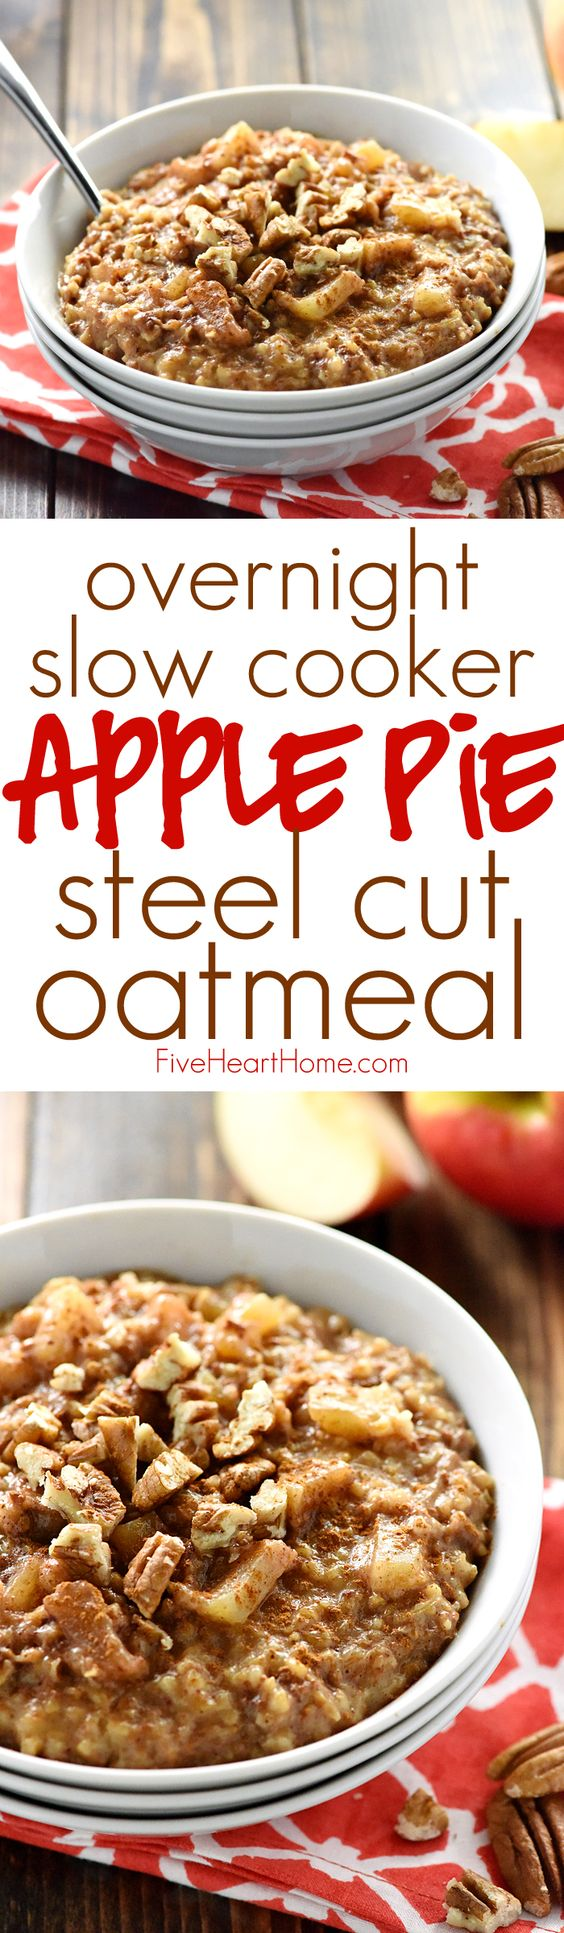 Overnight) Slow Cooker Apple Pie Steel Cut Oatmeal (with a ...